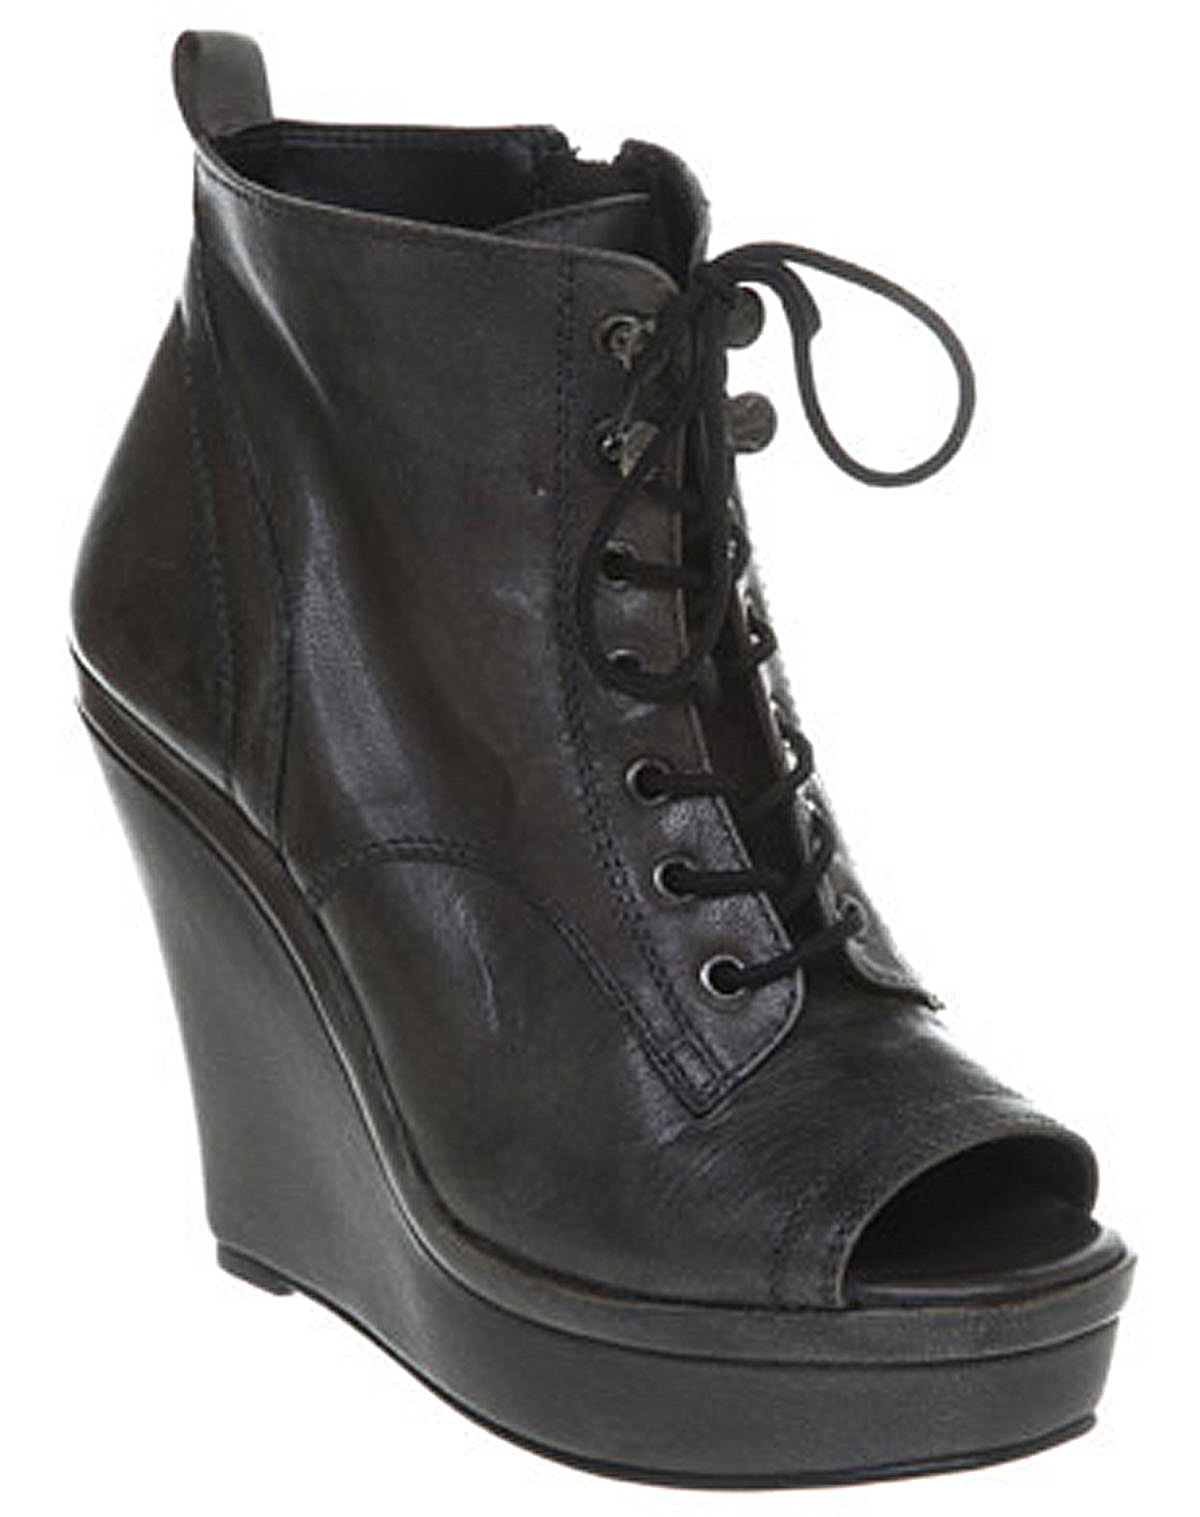 Womens-Office-Kingpin-Wedge-Boot-Black-Leather-Boots